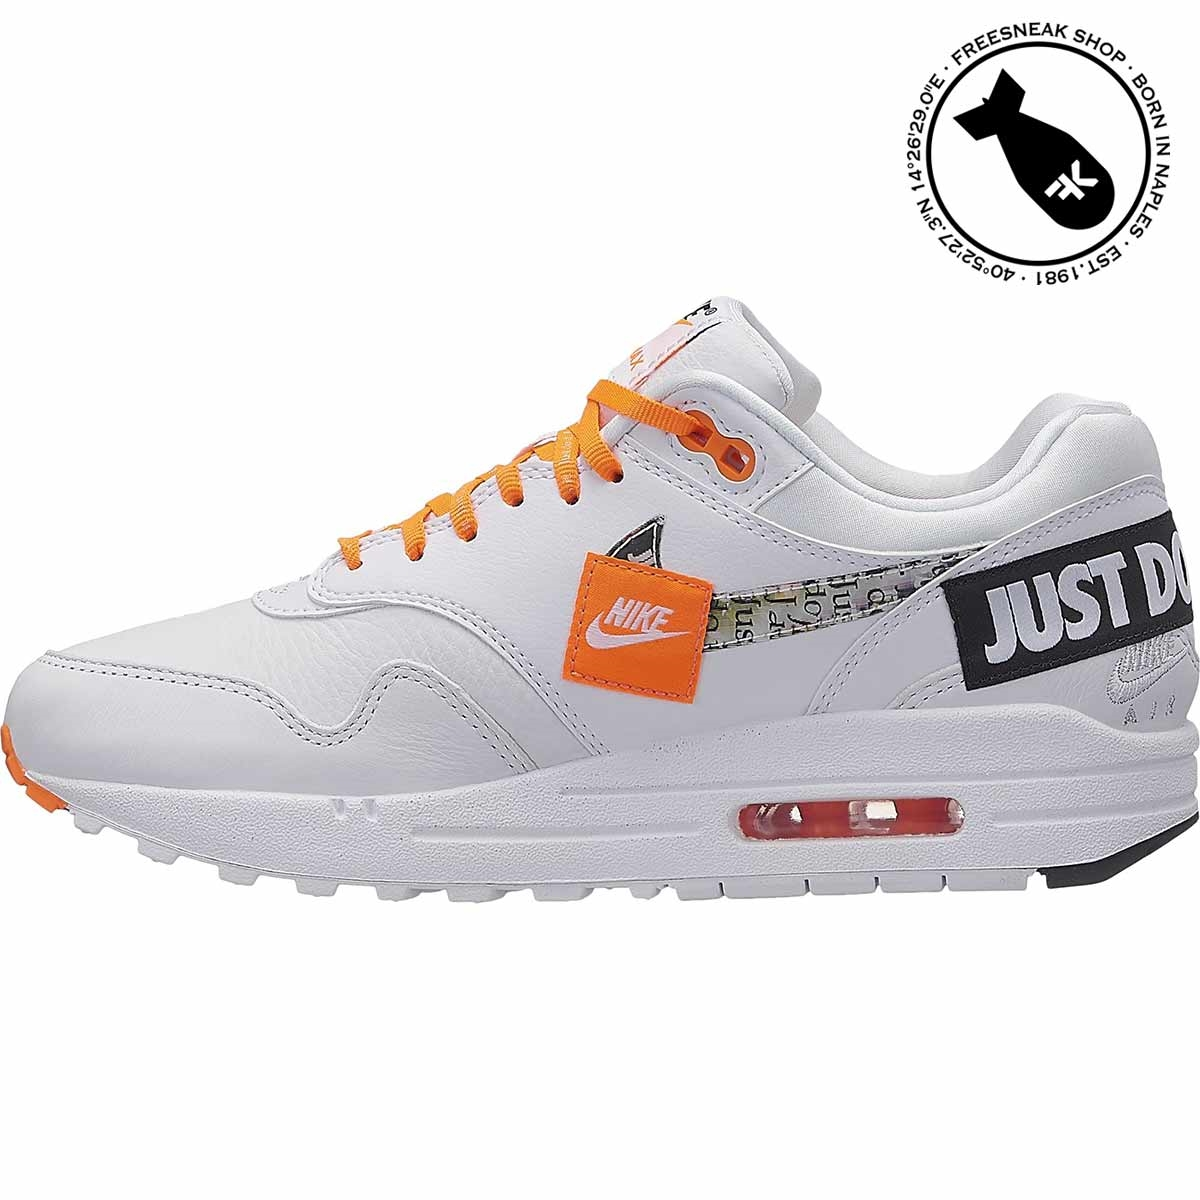 1c94fe2df7d Nike Air Max 1 Lux Just Do It White 917691-100